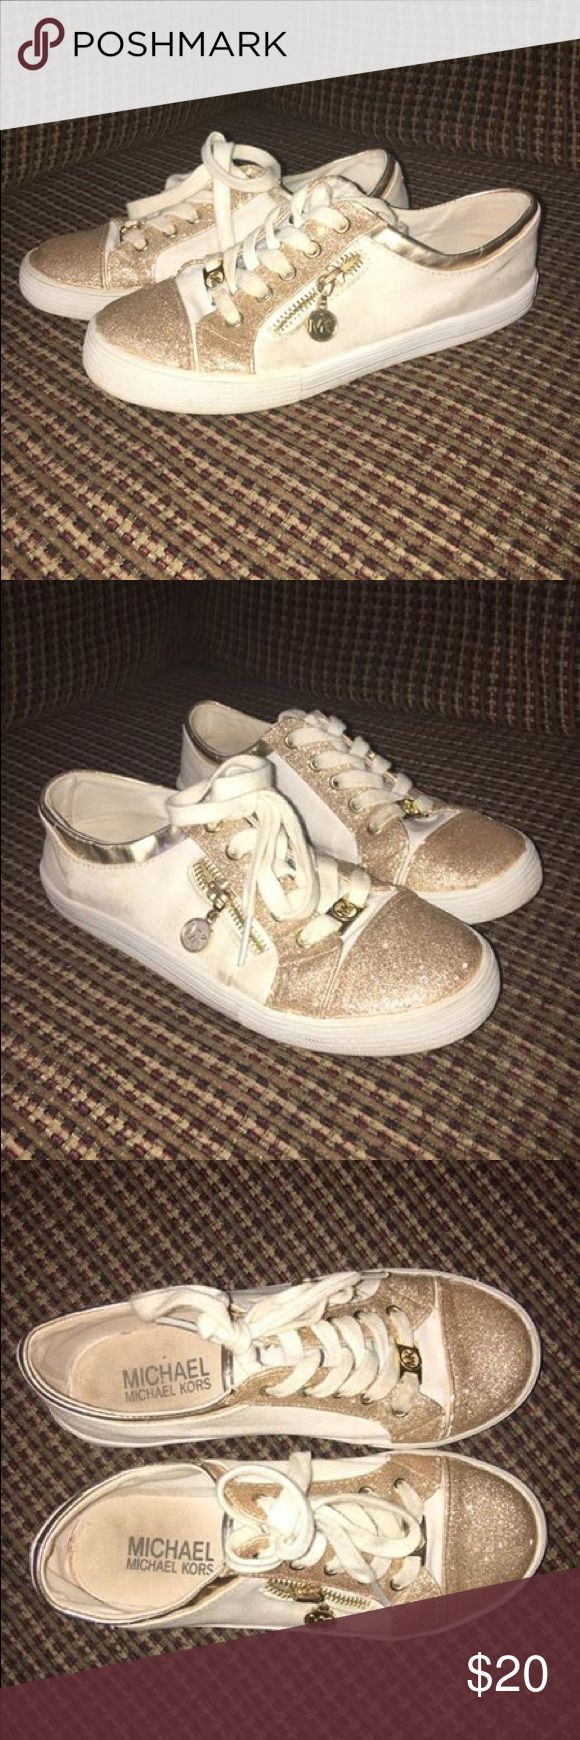 Michael Kors Girls Tennis Shoes Used condition, still lots of life left in them Michael Kors Shoes Sneakers